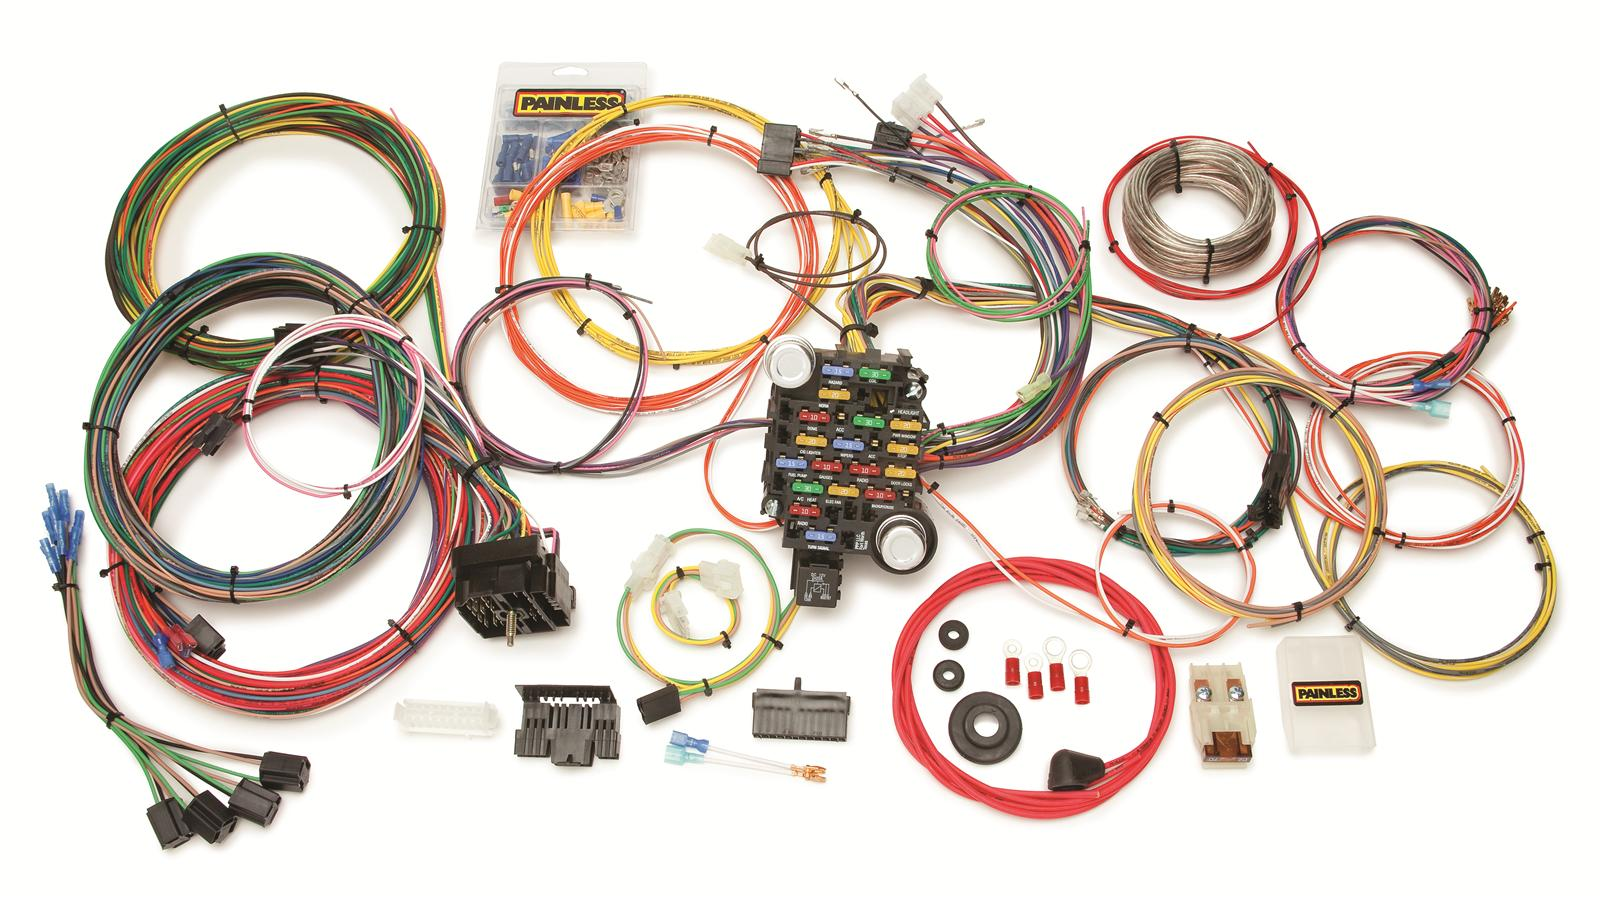 Wiring Harness 1987 Chevy C10 Building Fuel Tank Wire Painless Performance Gmc Truck Harnesses 10205 Free Shipping